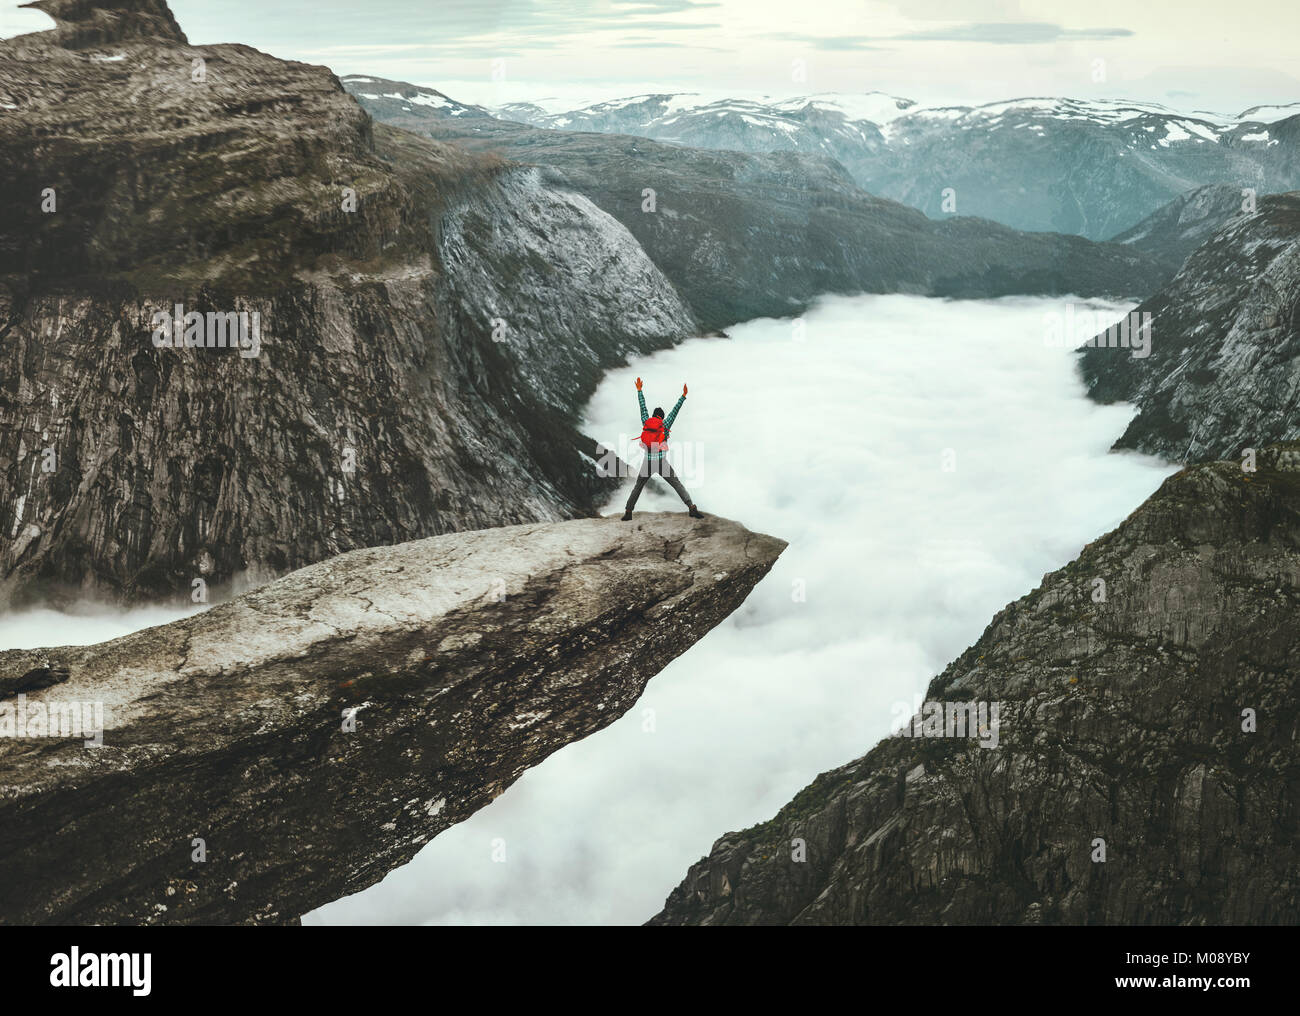 Man jumping on Trolltunga rocky cliff edge in Norway mountains Travel Lifestyle adventure happy emotional concept - Stock Image